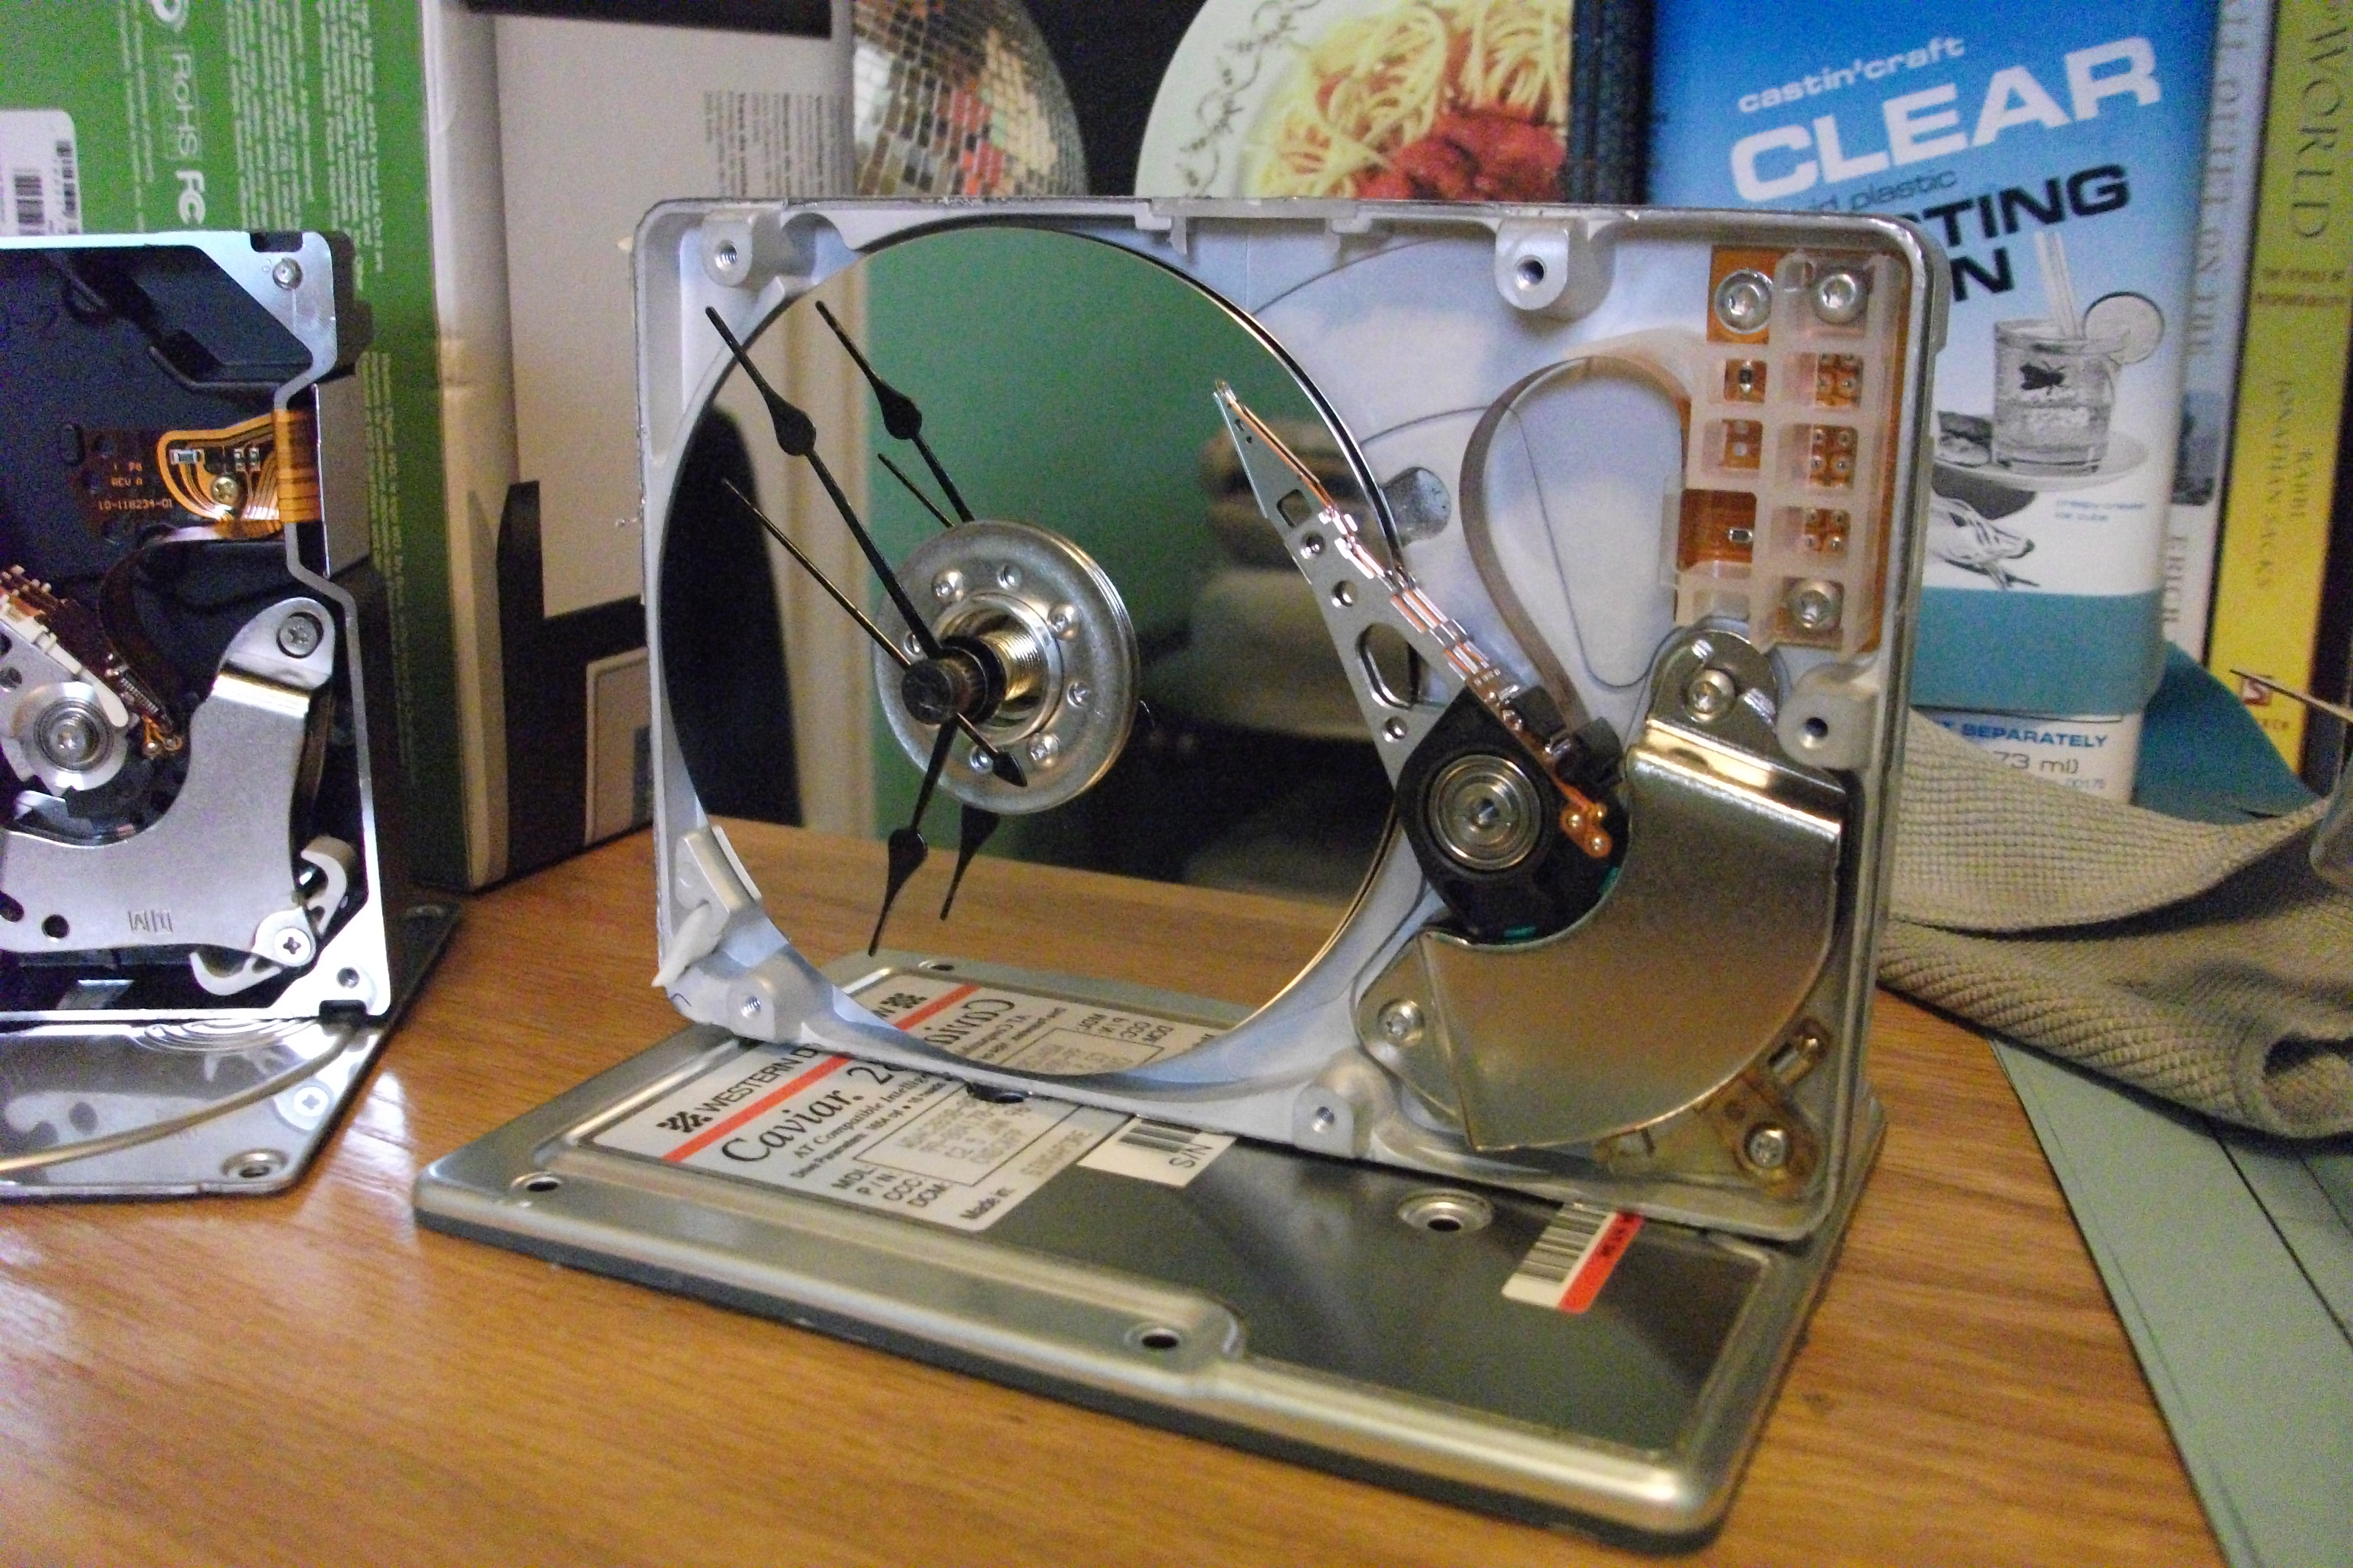 Picture of Recycled Hard Drive Desk Clock